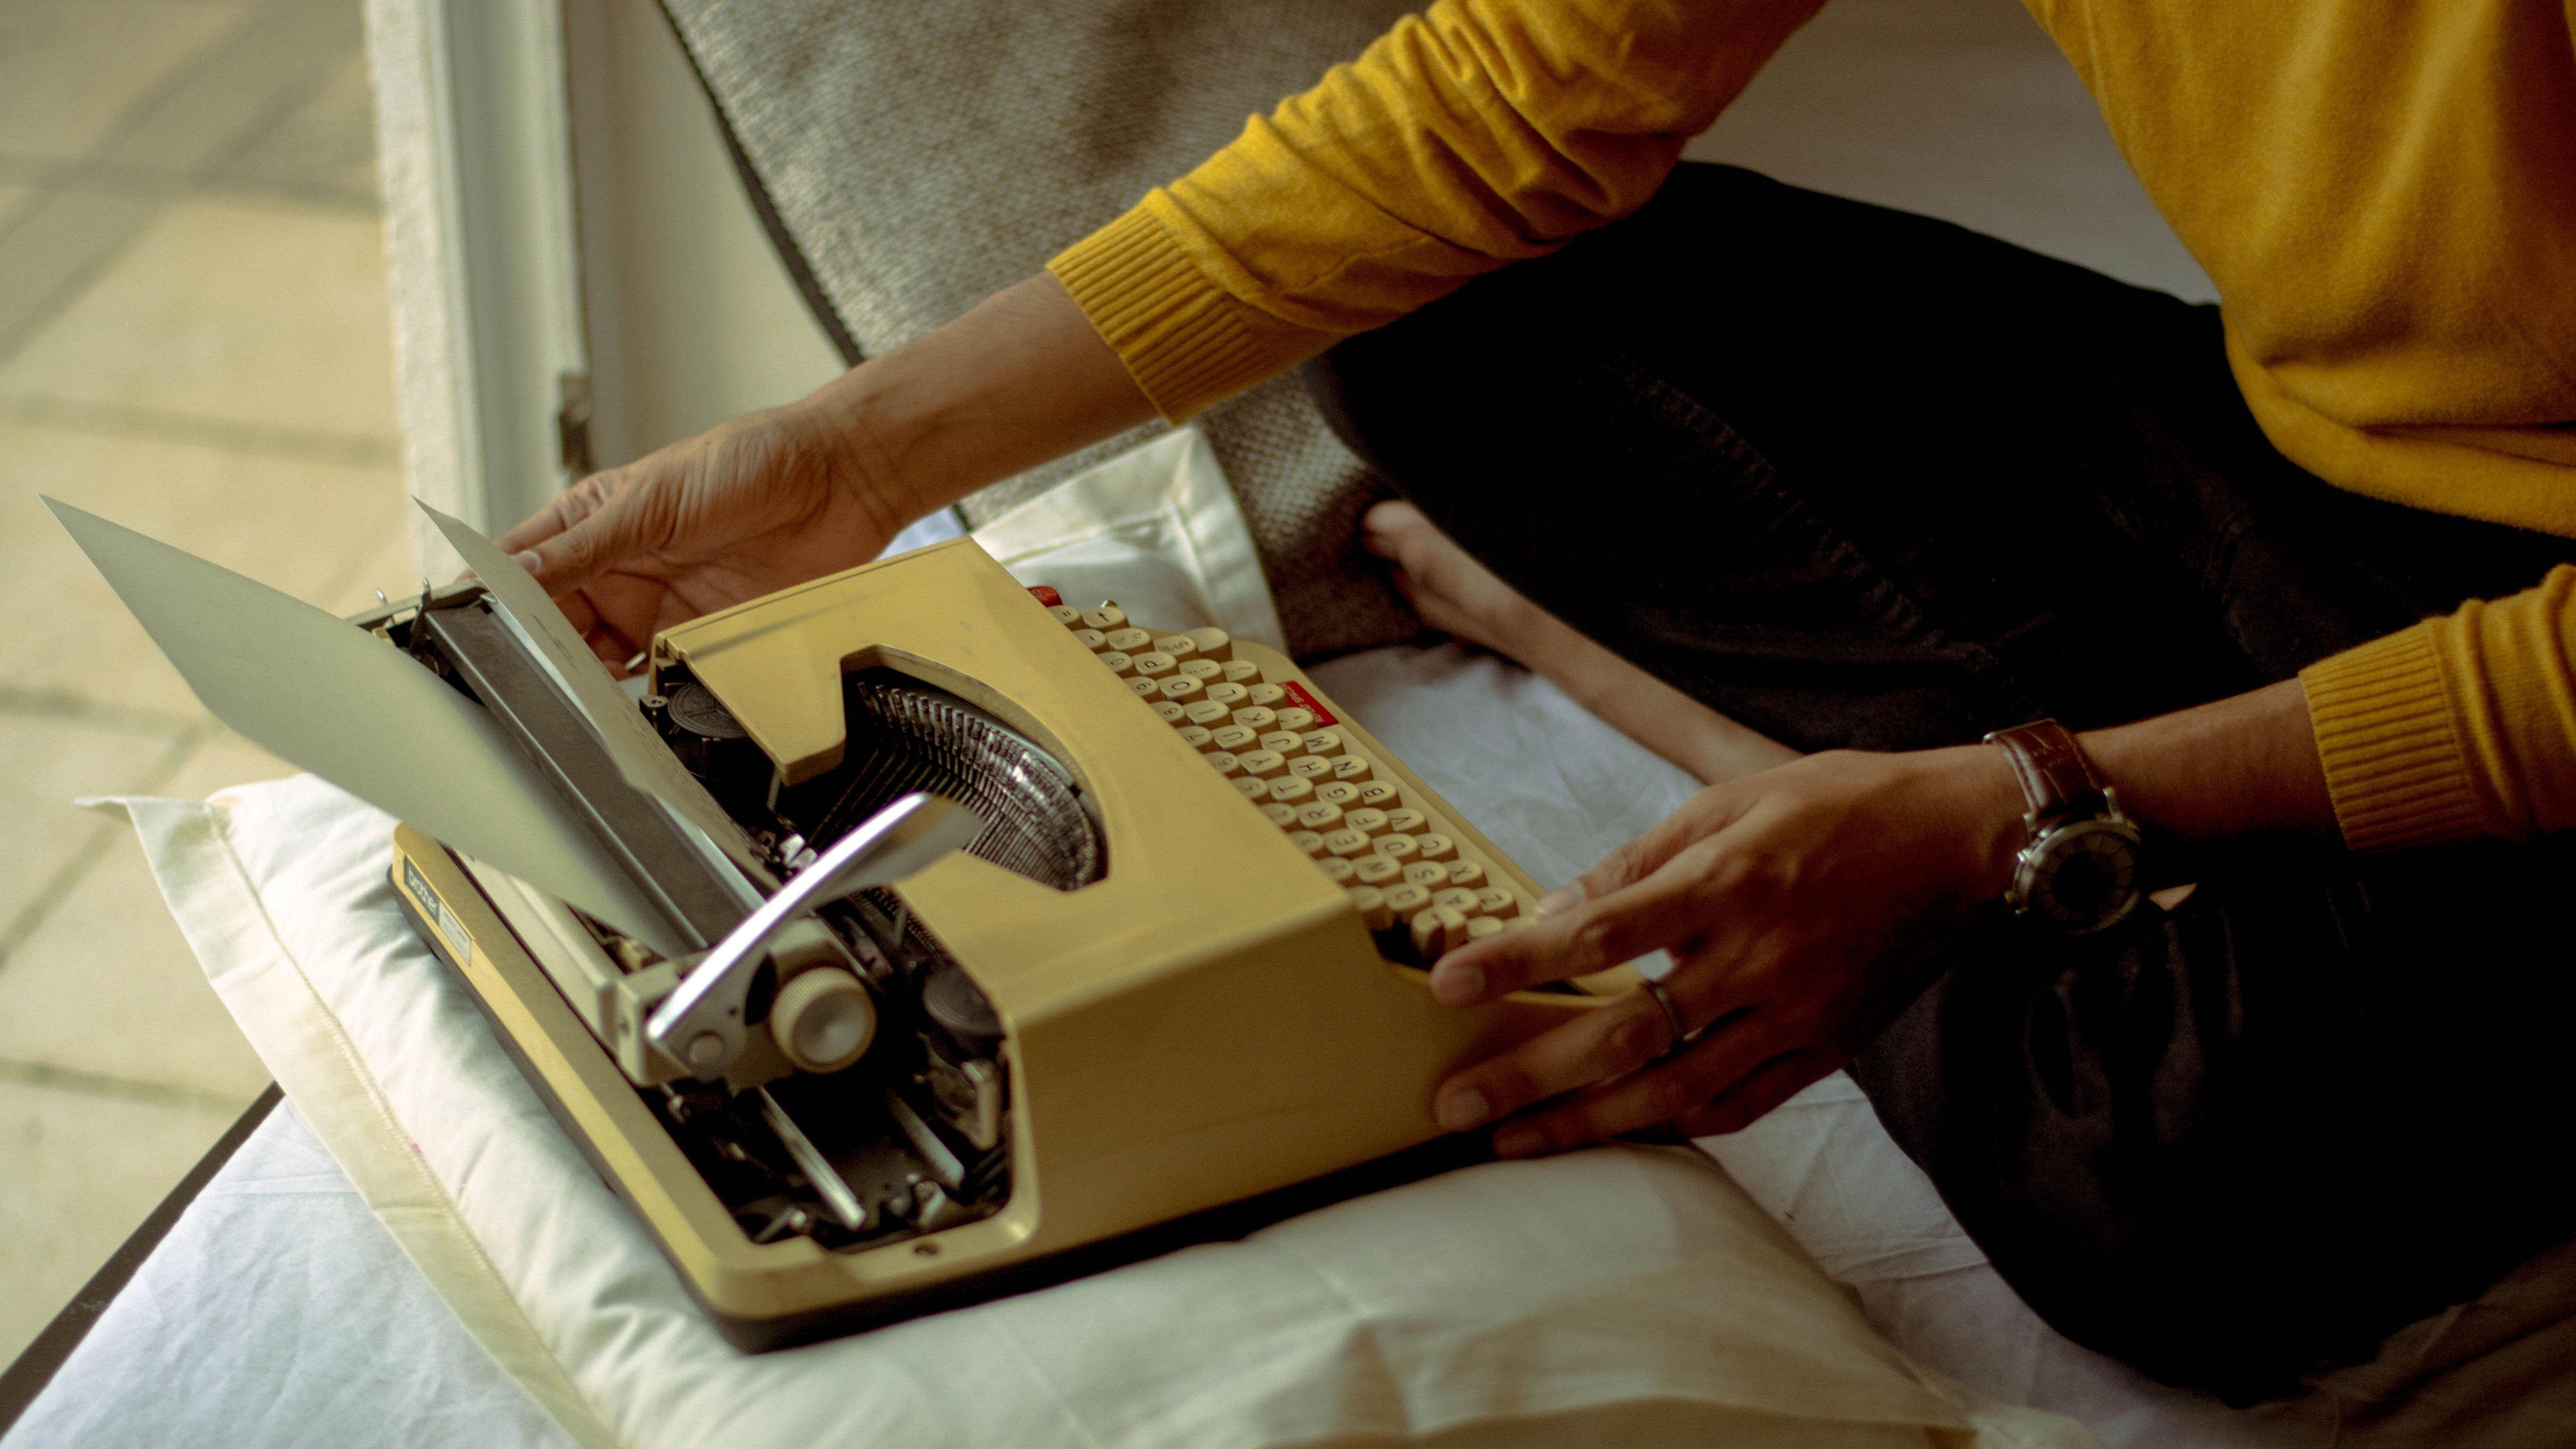 create before you consume — picture of a woman at a typewriter